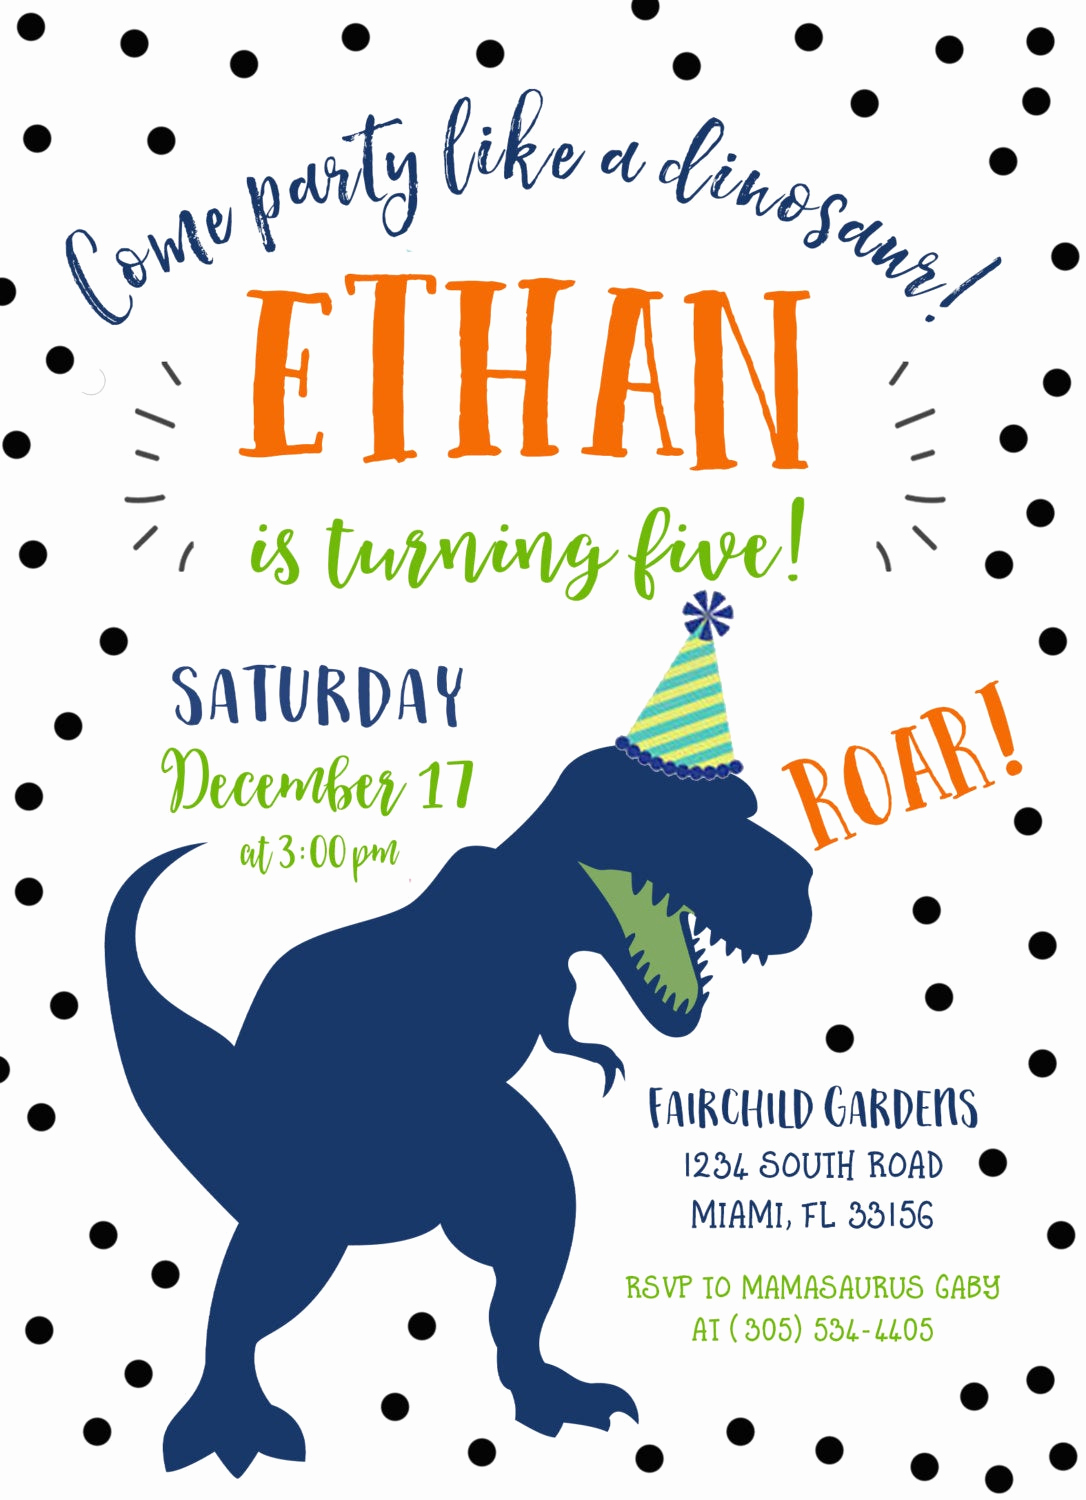 Dinosaur Birthday Invitation Wording Best Of Dinosaur Birthday Invitation Dinosaur Invitation